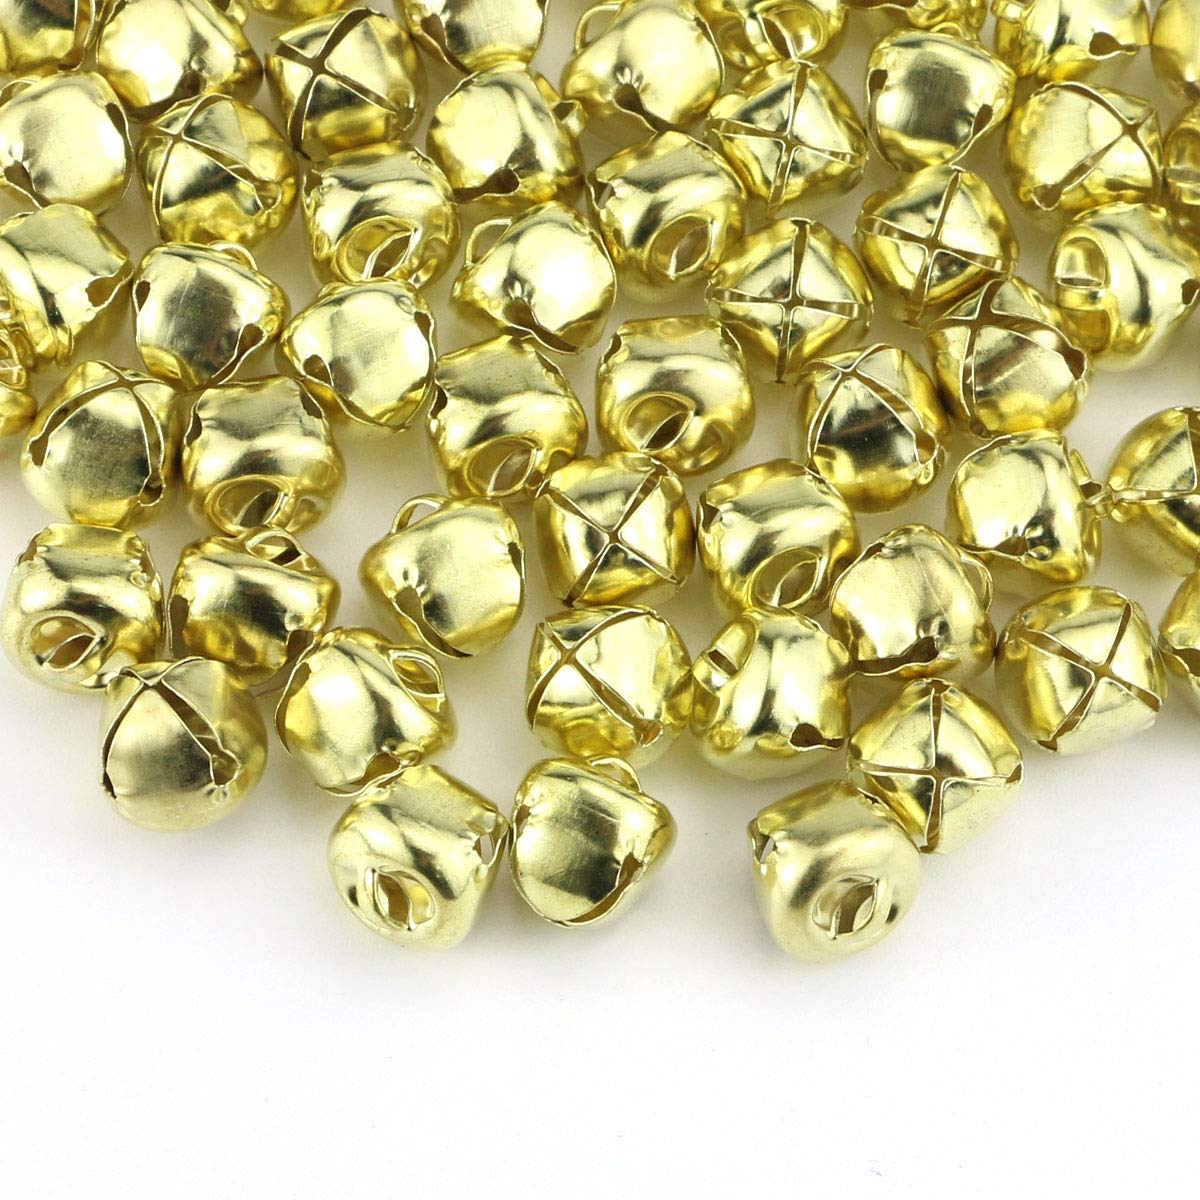 Faxco 300Pcs 13mm//0.5inch Jingle Bells Golden Craft Bell,DIY Bells for Christmas Decoration /& Party /& Festival Decorations